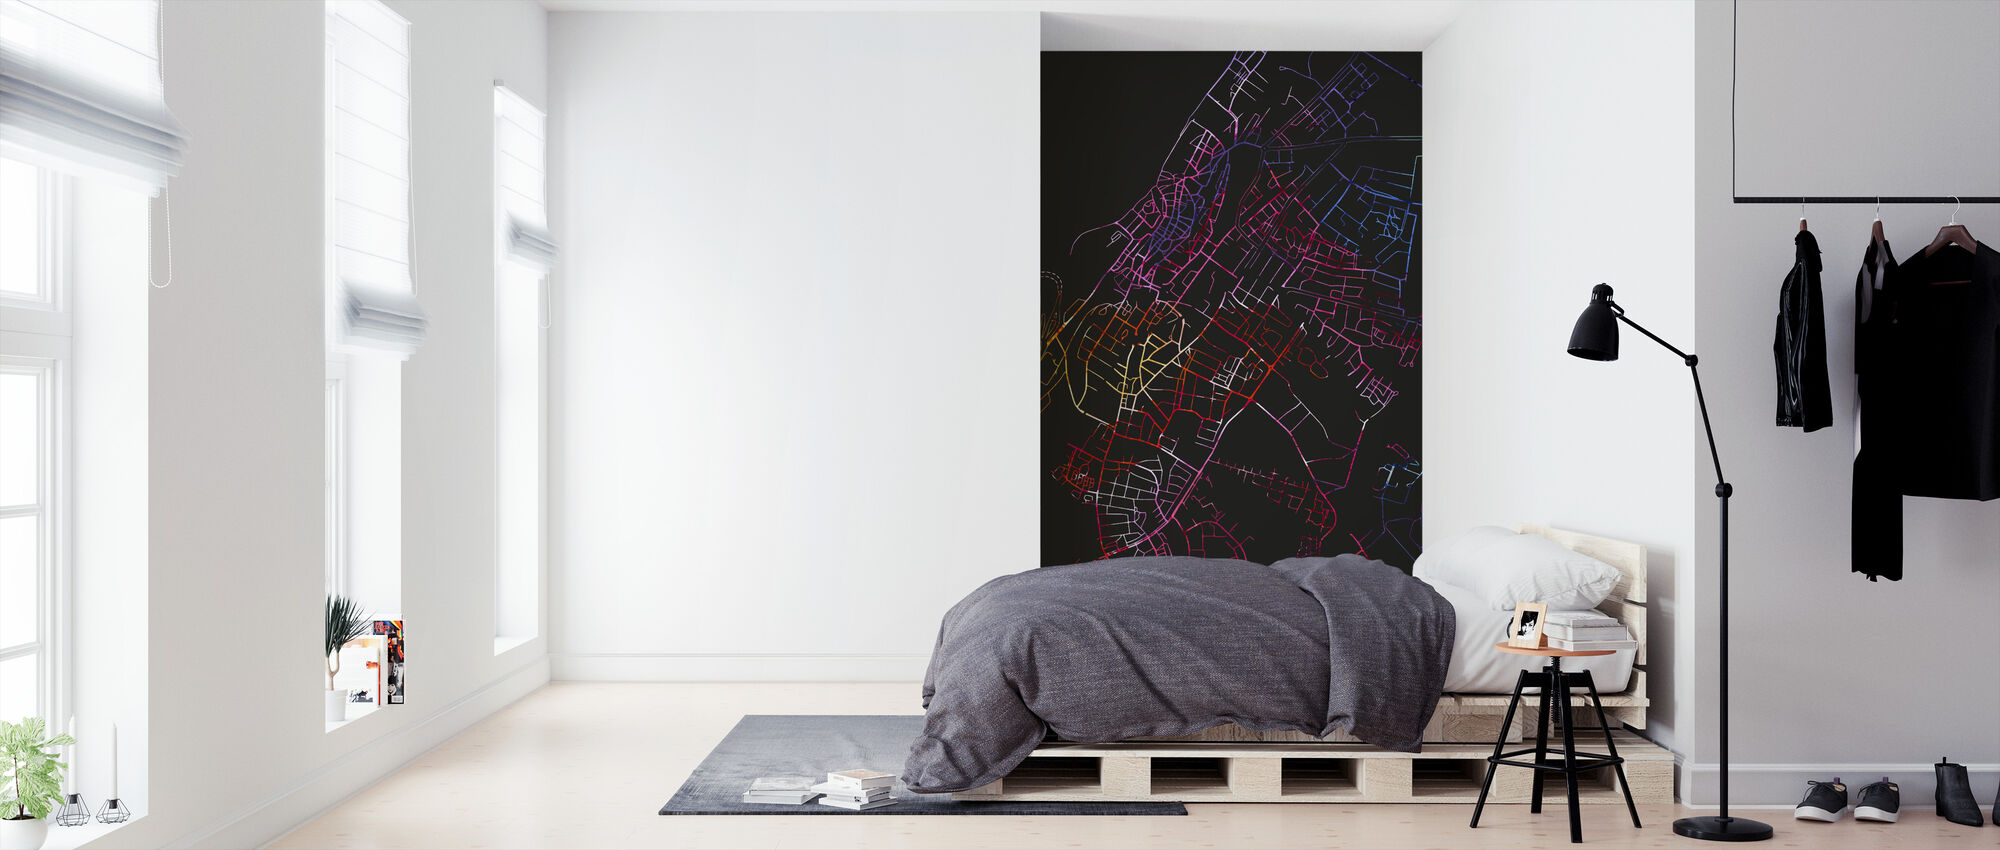 Visby in Sweden - Map - Wallpaper - Bedroom